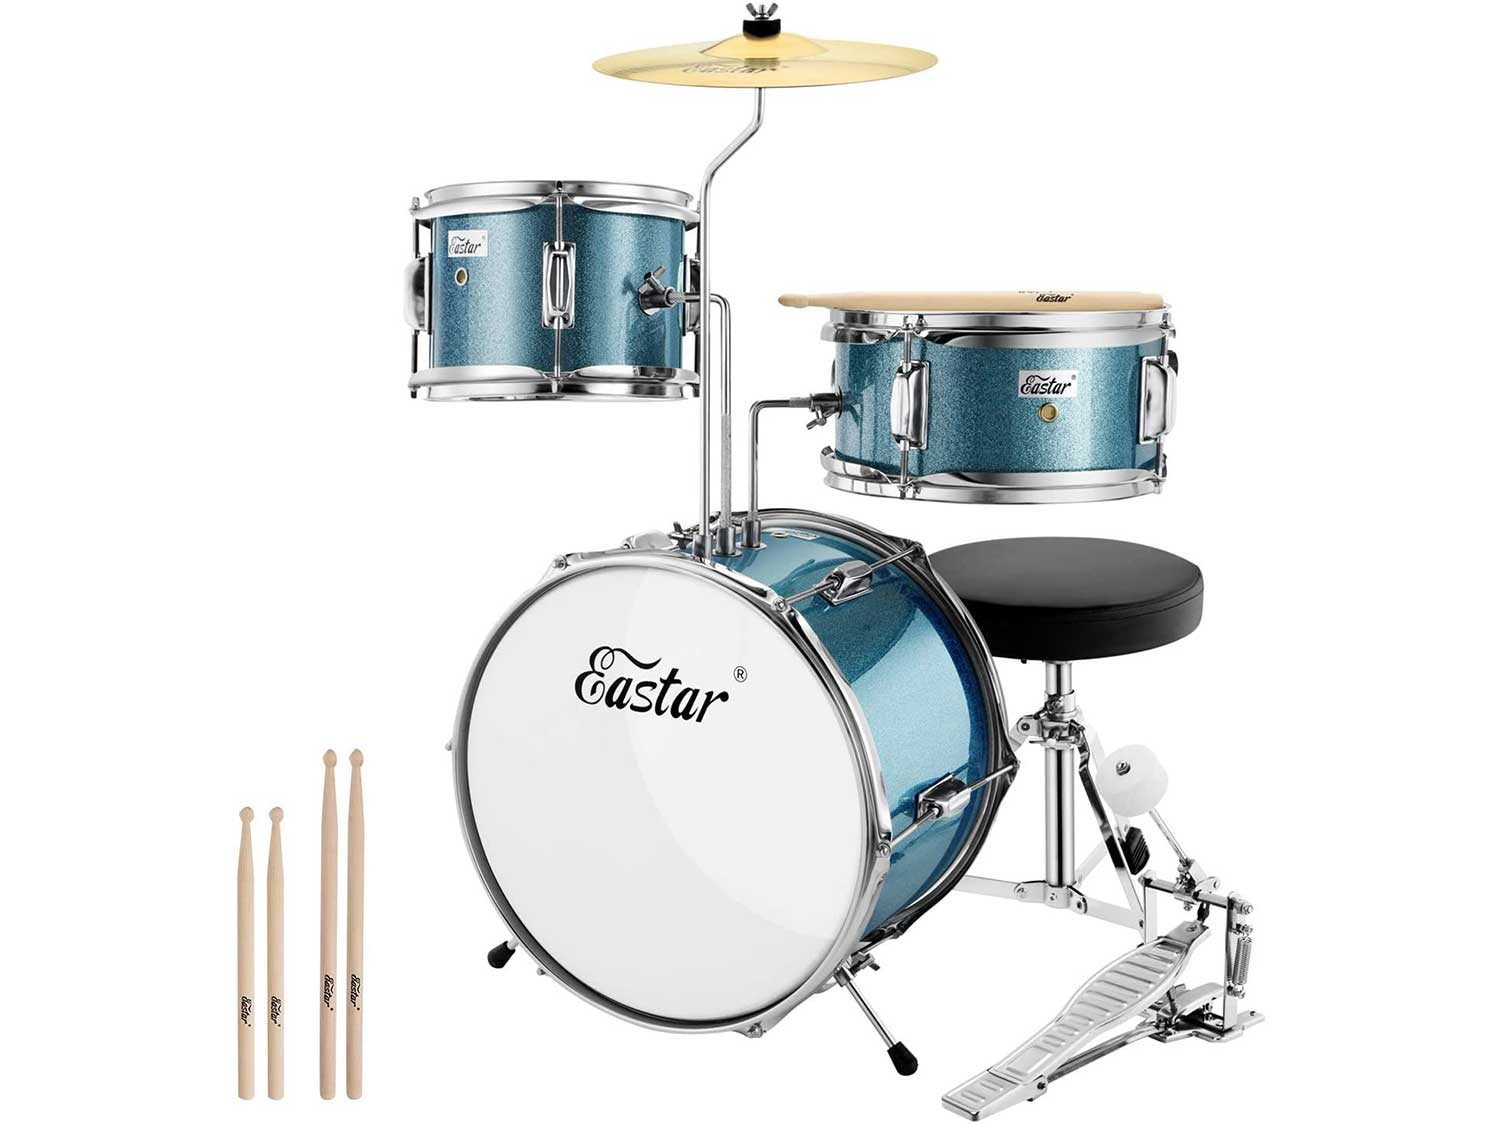 Eastar 14 inch Kids Drum Set Age 5 Real 3 Pieces with Throne, Cymbal, Pedal & Drumsticks, Metallic Sky Blue